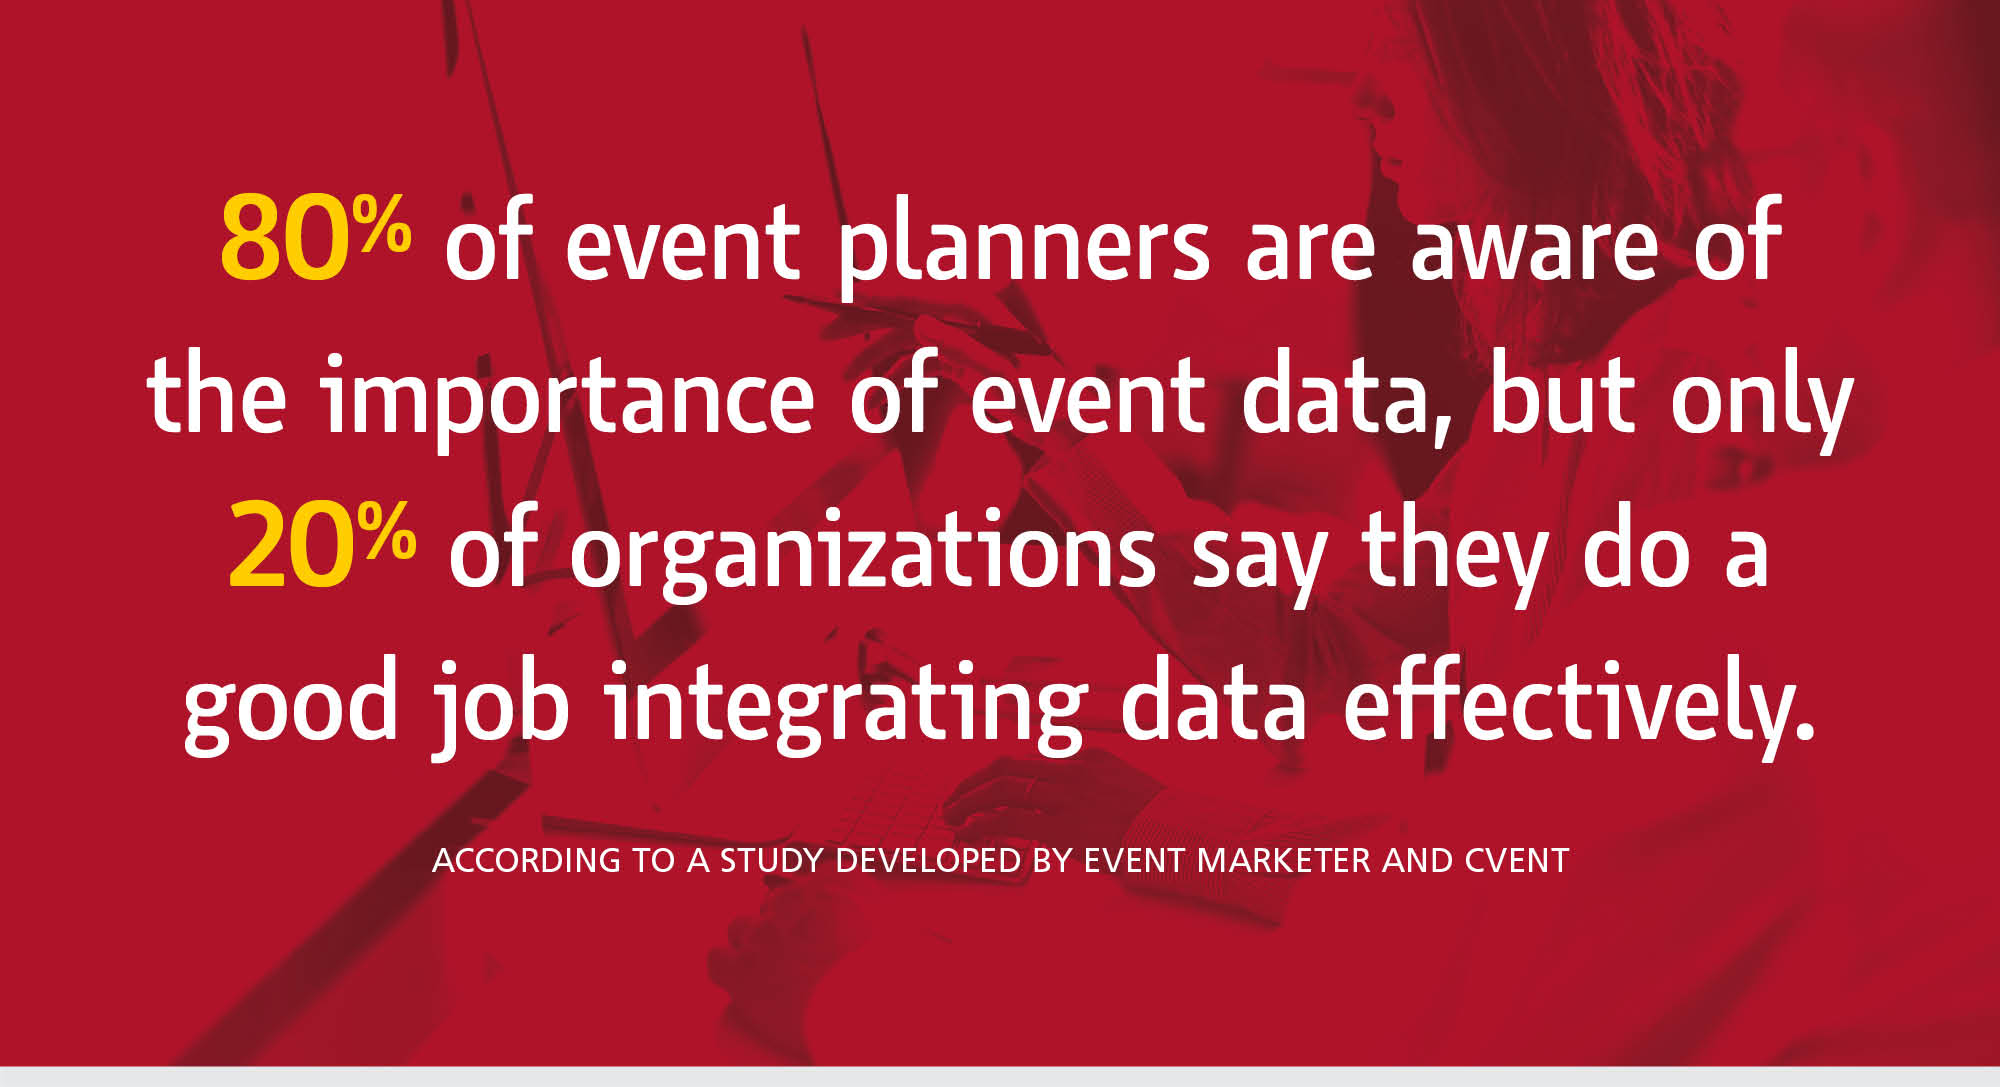 80% of event planners are aware of the importance of event data, but only 20% of organizations say they do a good job integrating data effectively according to a study developed by Event Marketer and Cvent